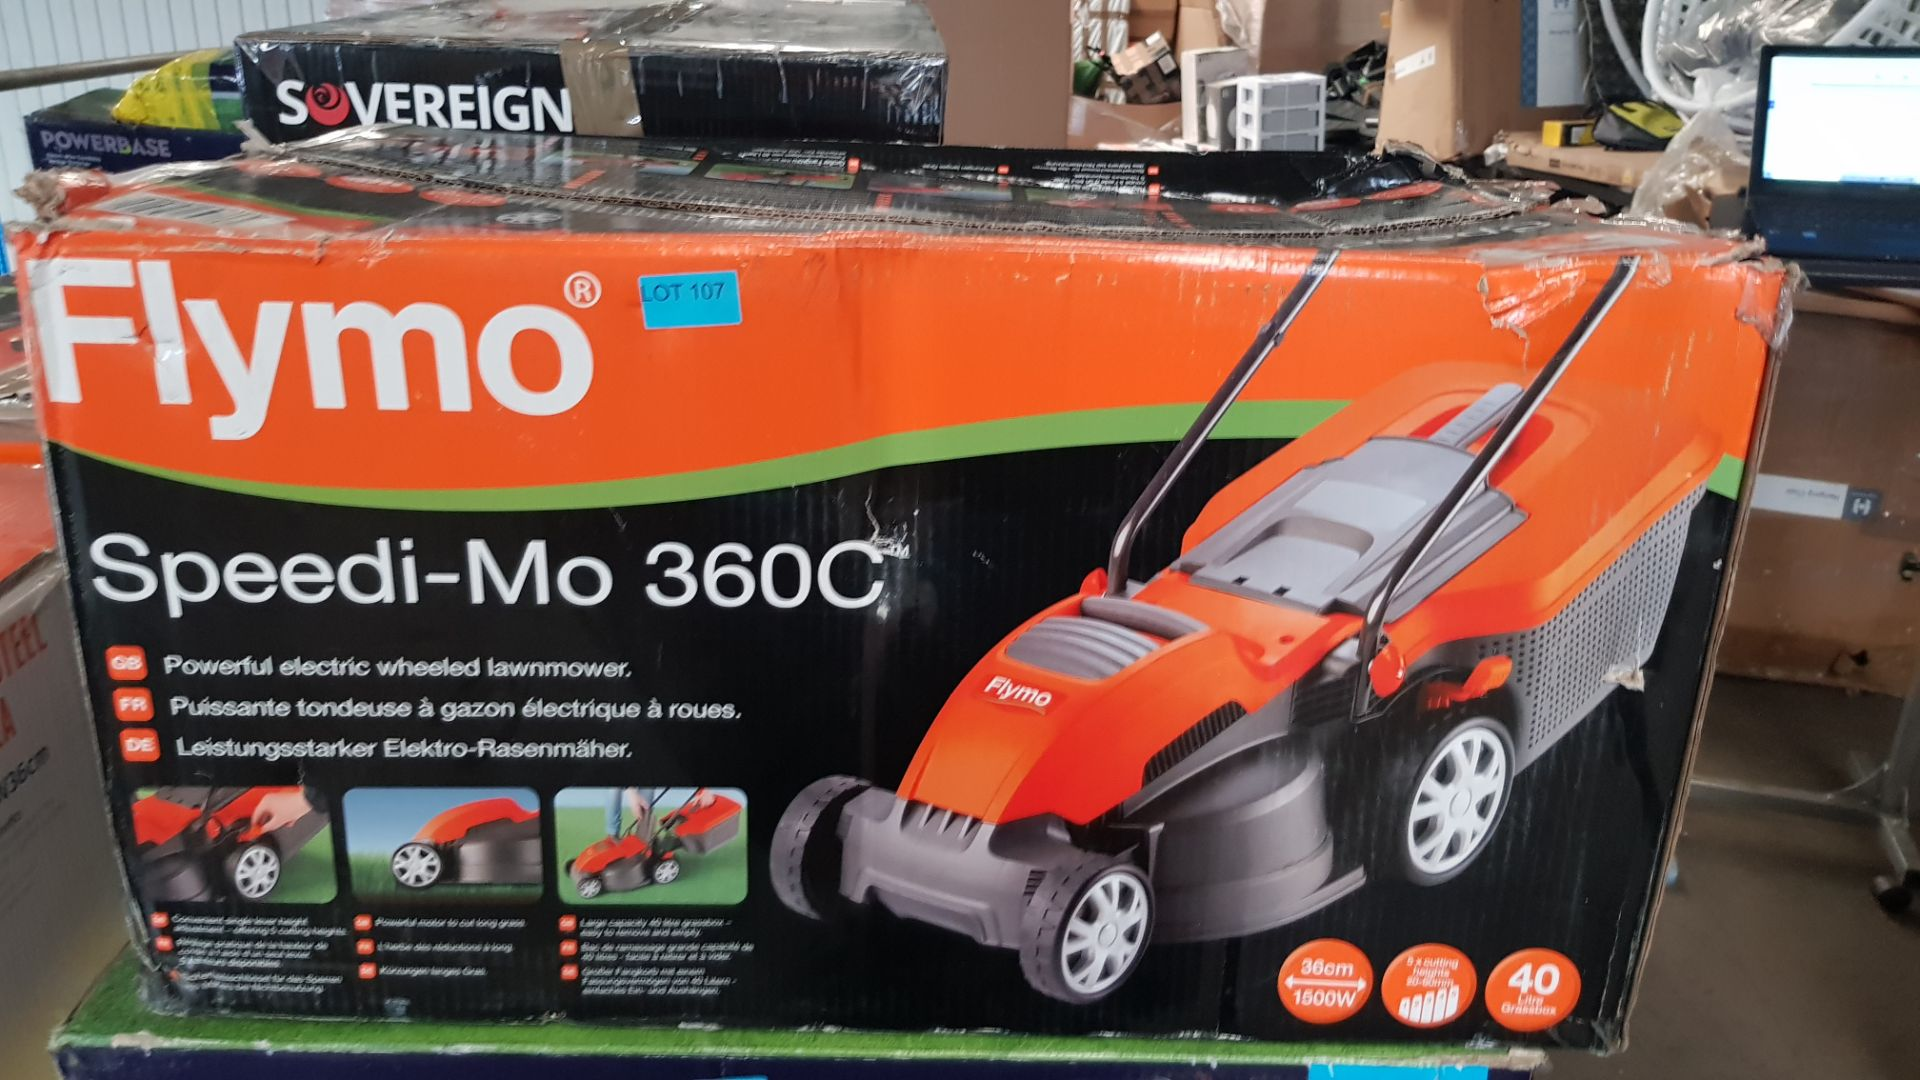 (P2) 1x Flymo Speedi-Mo 360C. RRP £109.99. Unit Appears Clean, As New. Contents In Original Package - Image 3 of 5